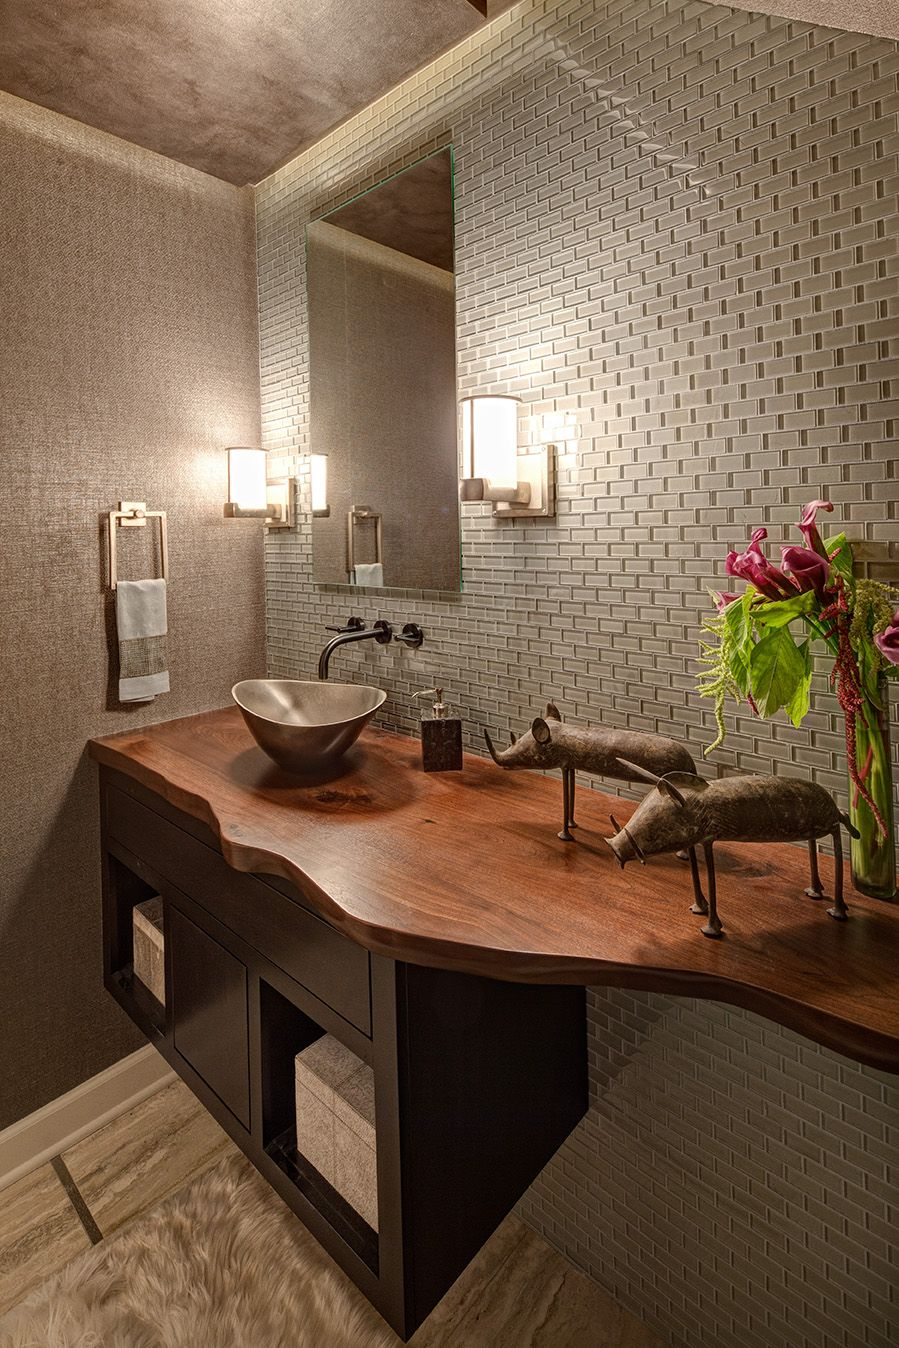 Yes Badezimmer Rooms Beds And Baths By Susan Fredman Design Group Bathroom